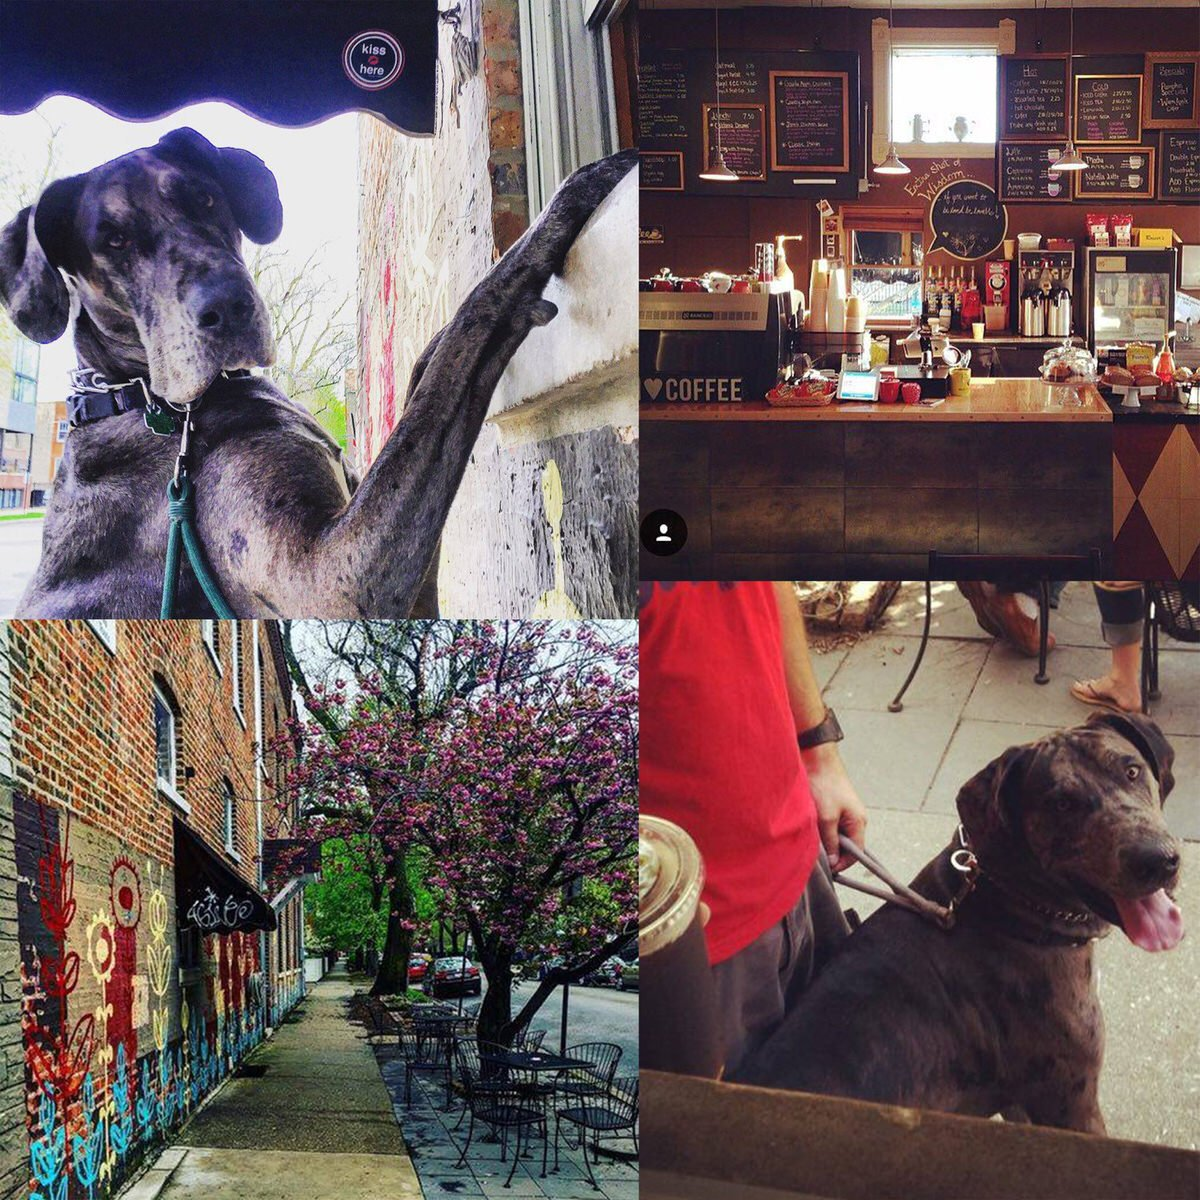 7 Great Dog-Friendly Coffee Shops in Chicago - Windy City Paws